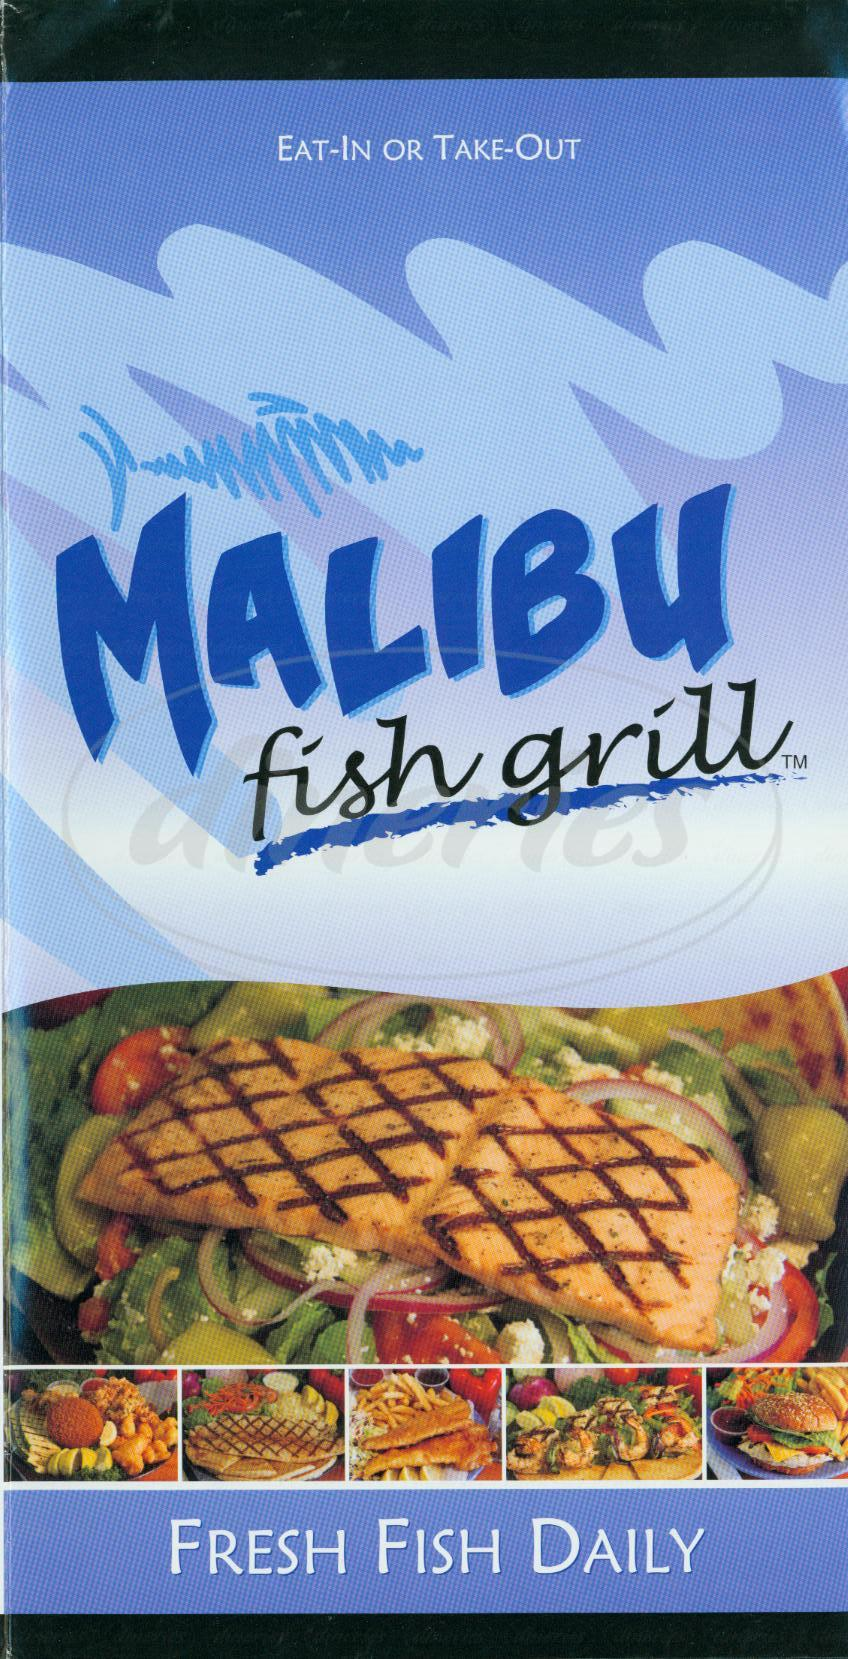 menu for Malibu Fish Grill